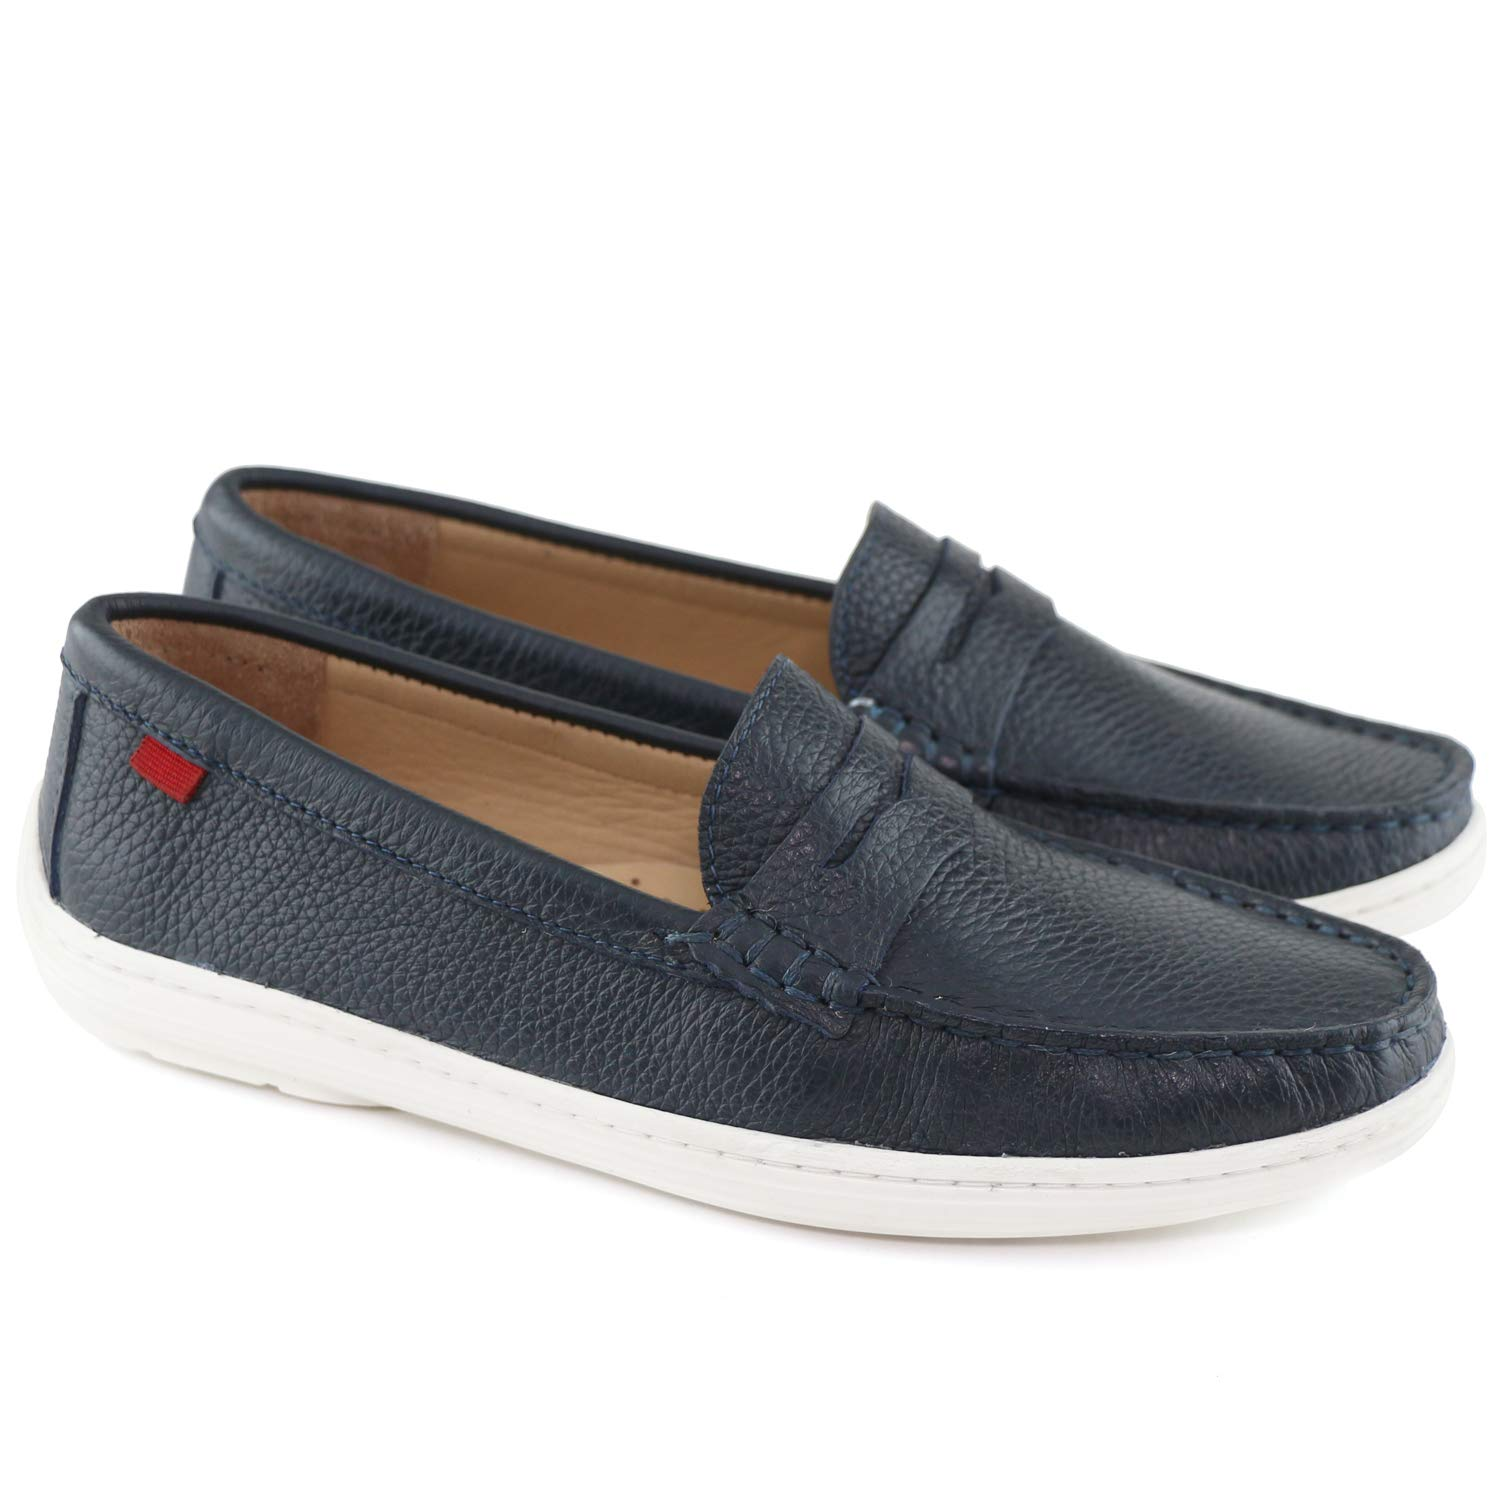 MARC JOSEPH NEW YORK Kids Boys/Girls Casual Comfort Slip On Penny Loafer Navy Grainy 5.5 by MARC JOSEPH NEW YORK (Image #4)